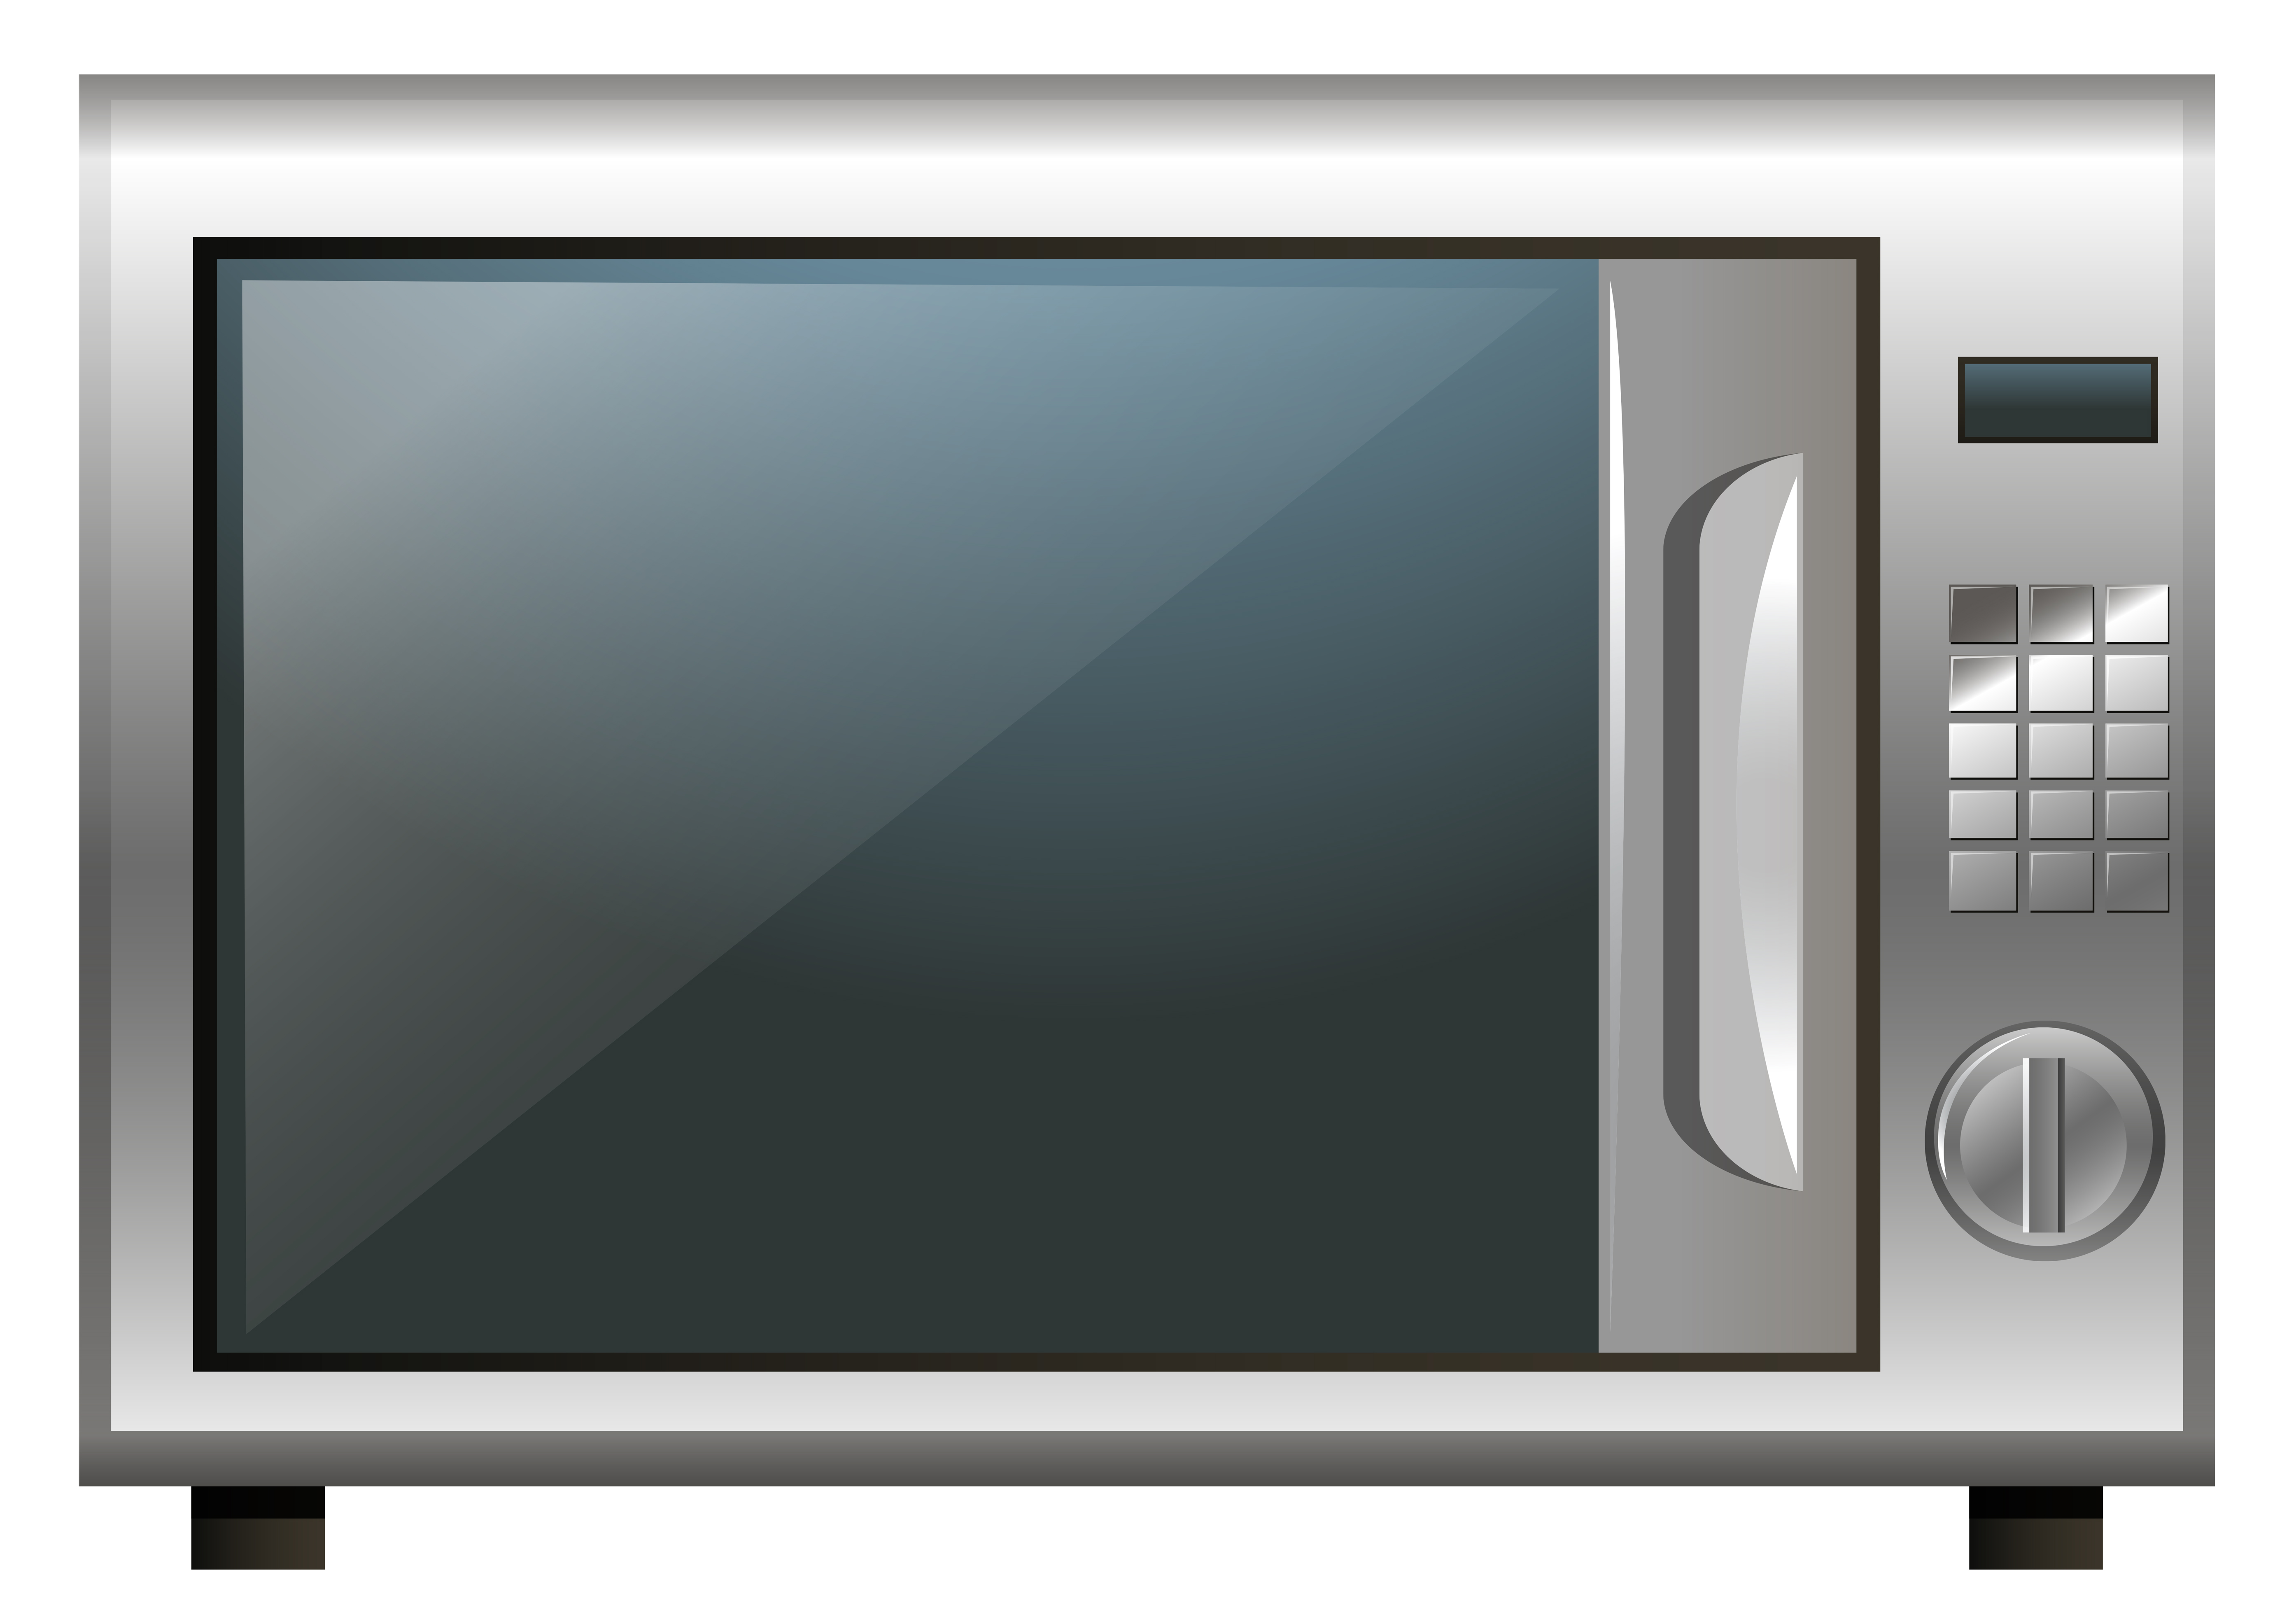 Microwave Oven On White Background Download Free Vectors